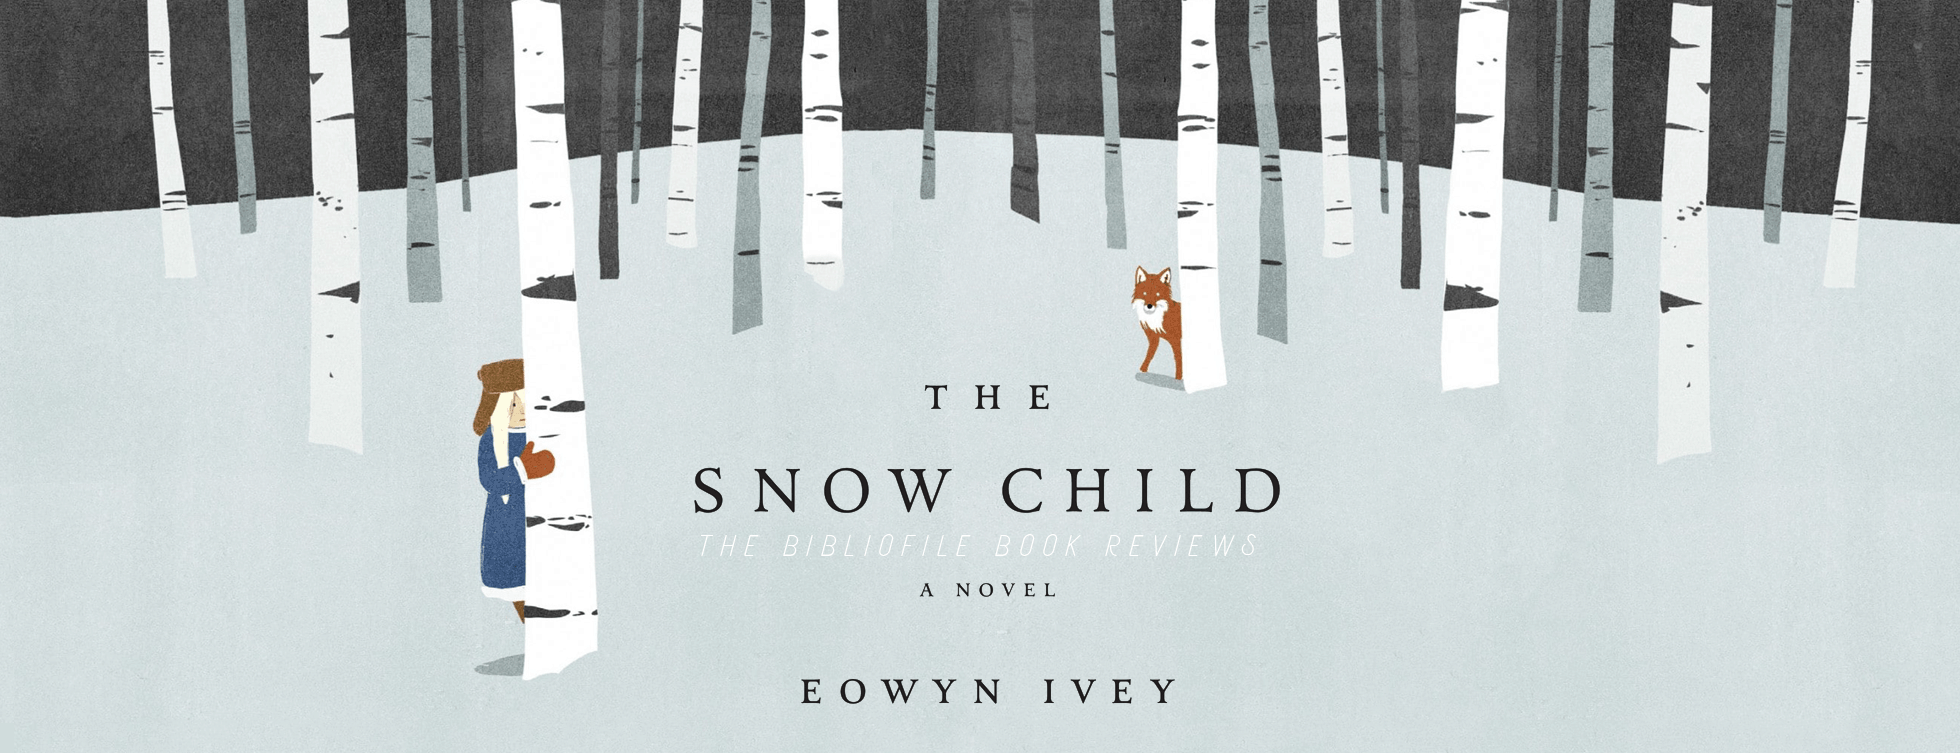 snow child eowyn ivey